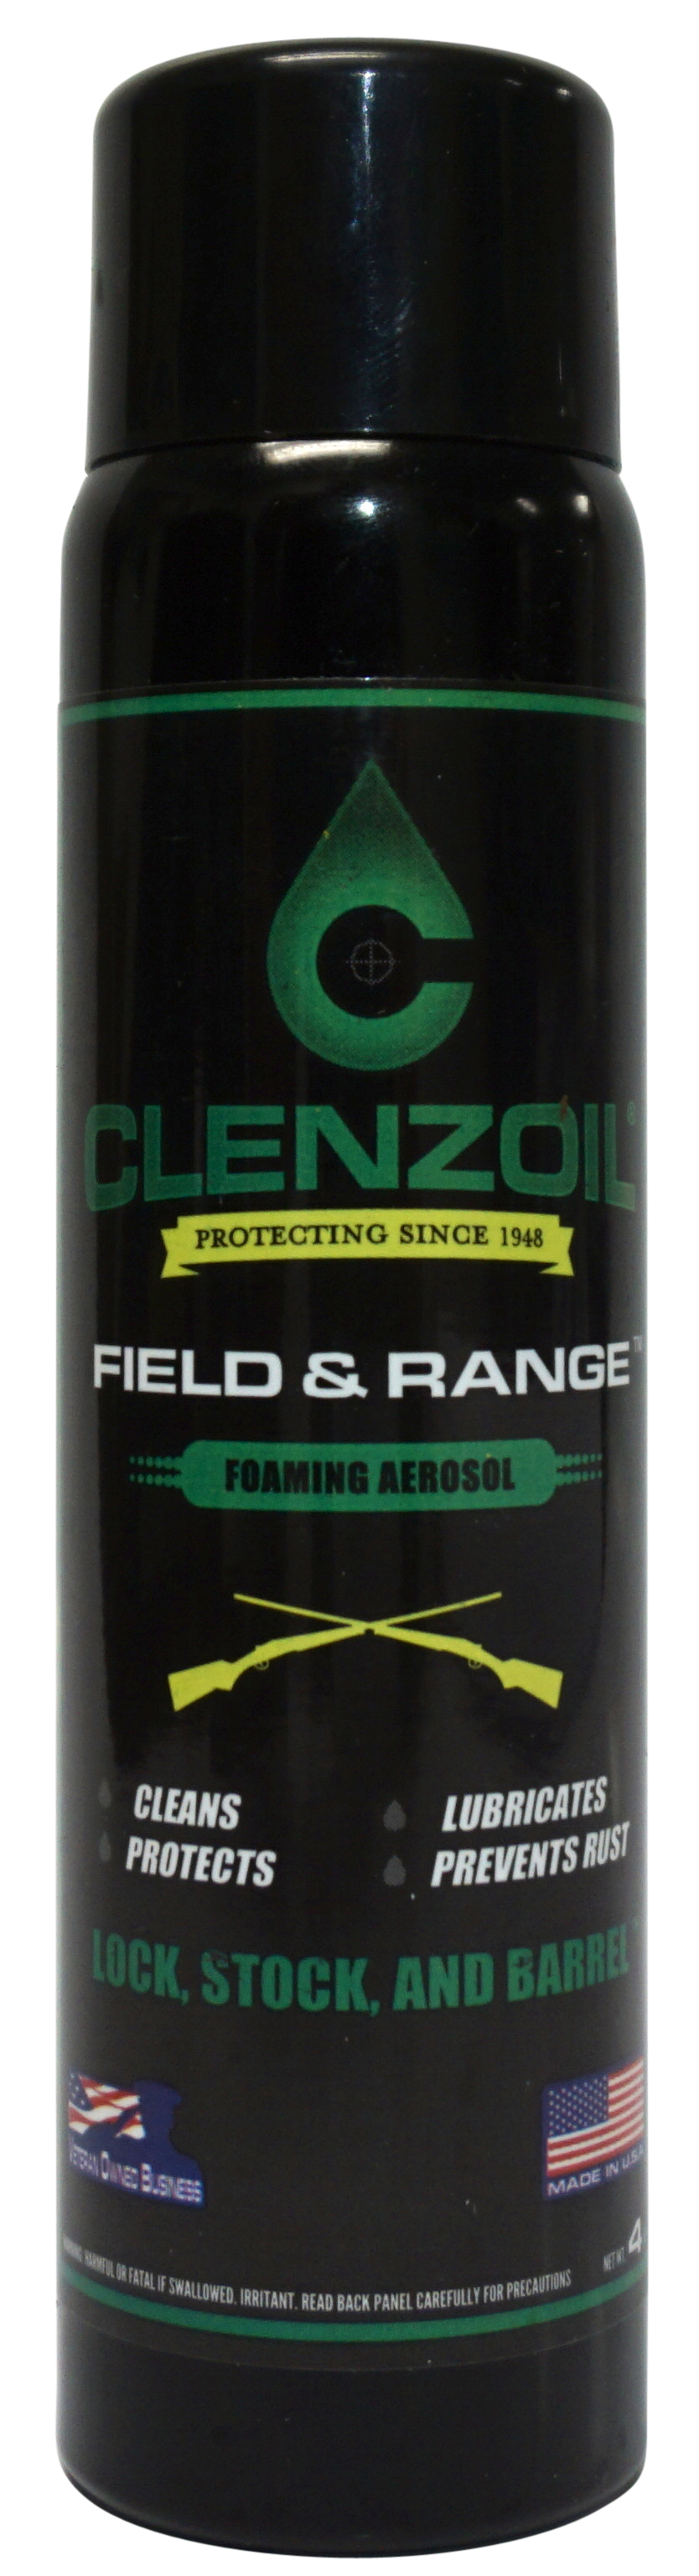 Clenzoil Field & Range CLP Spray - 4 oz - Aerosol